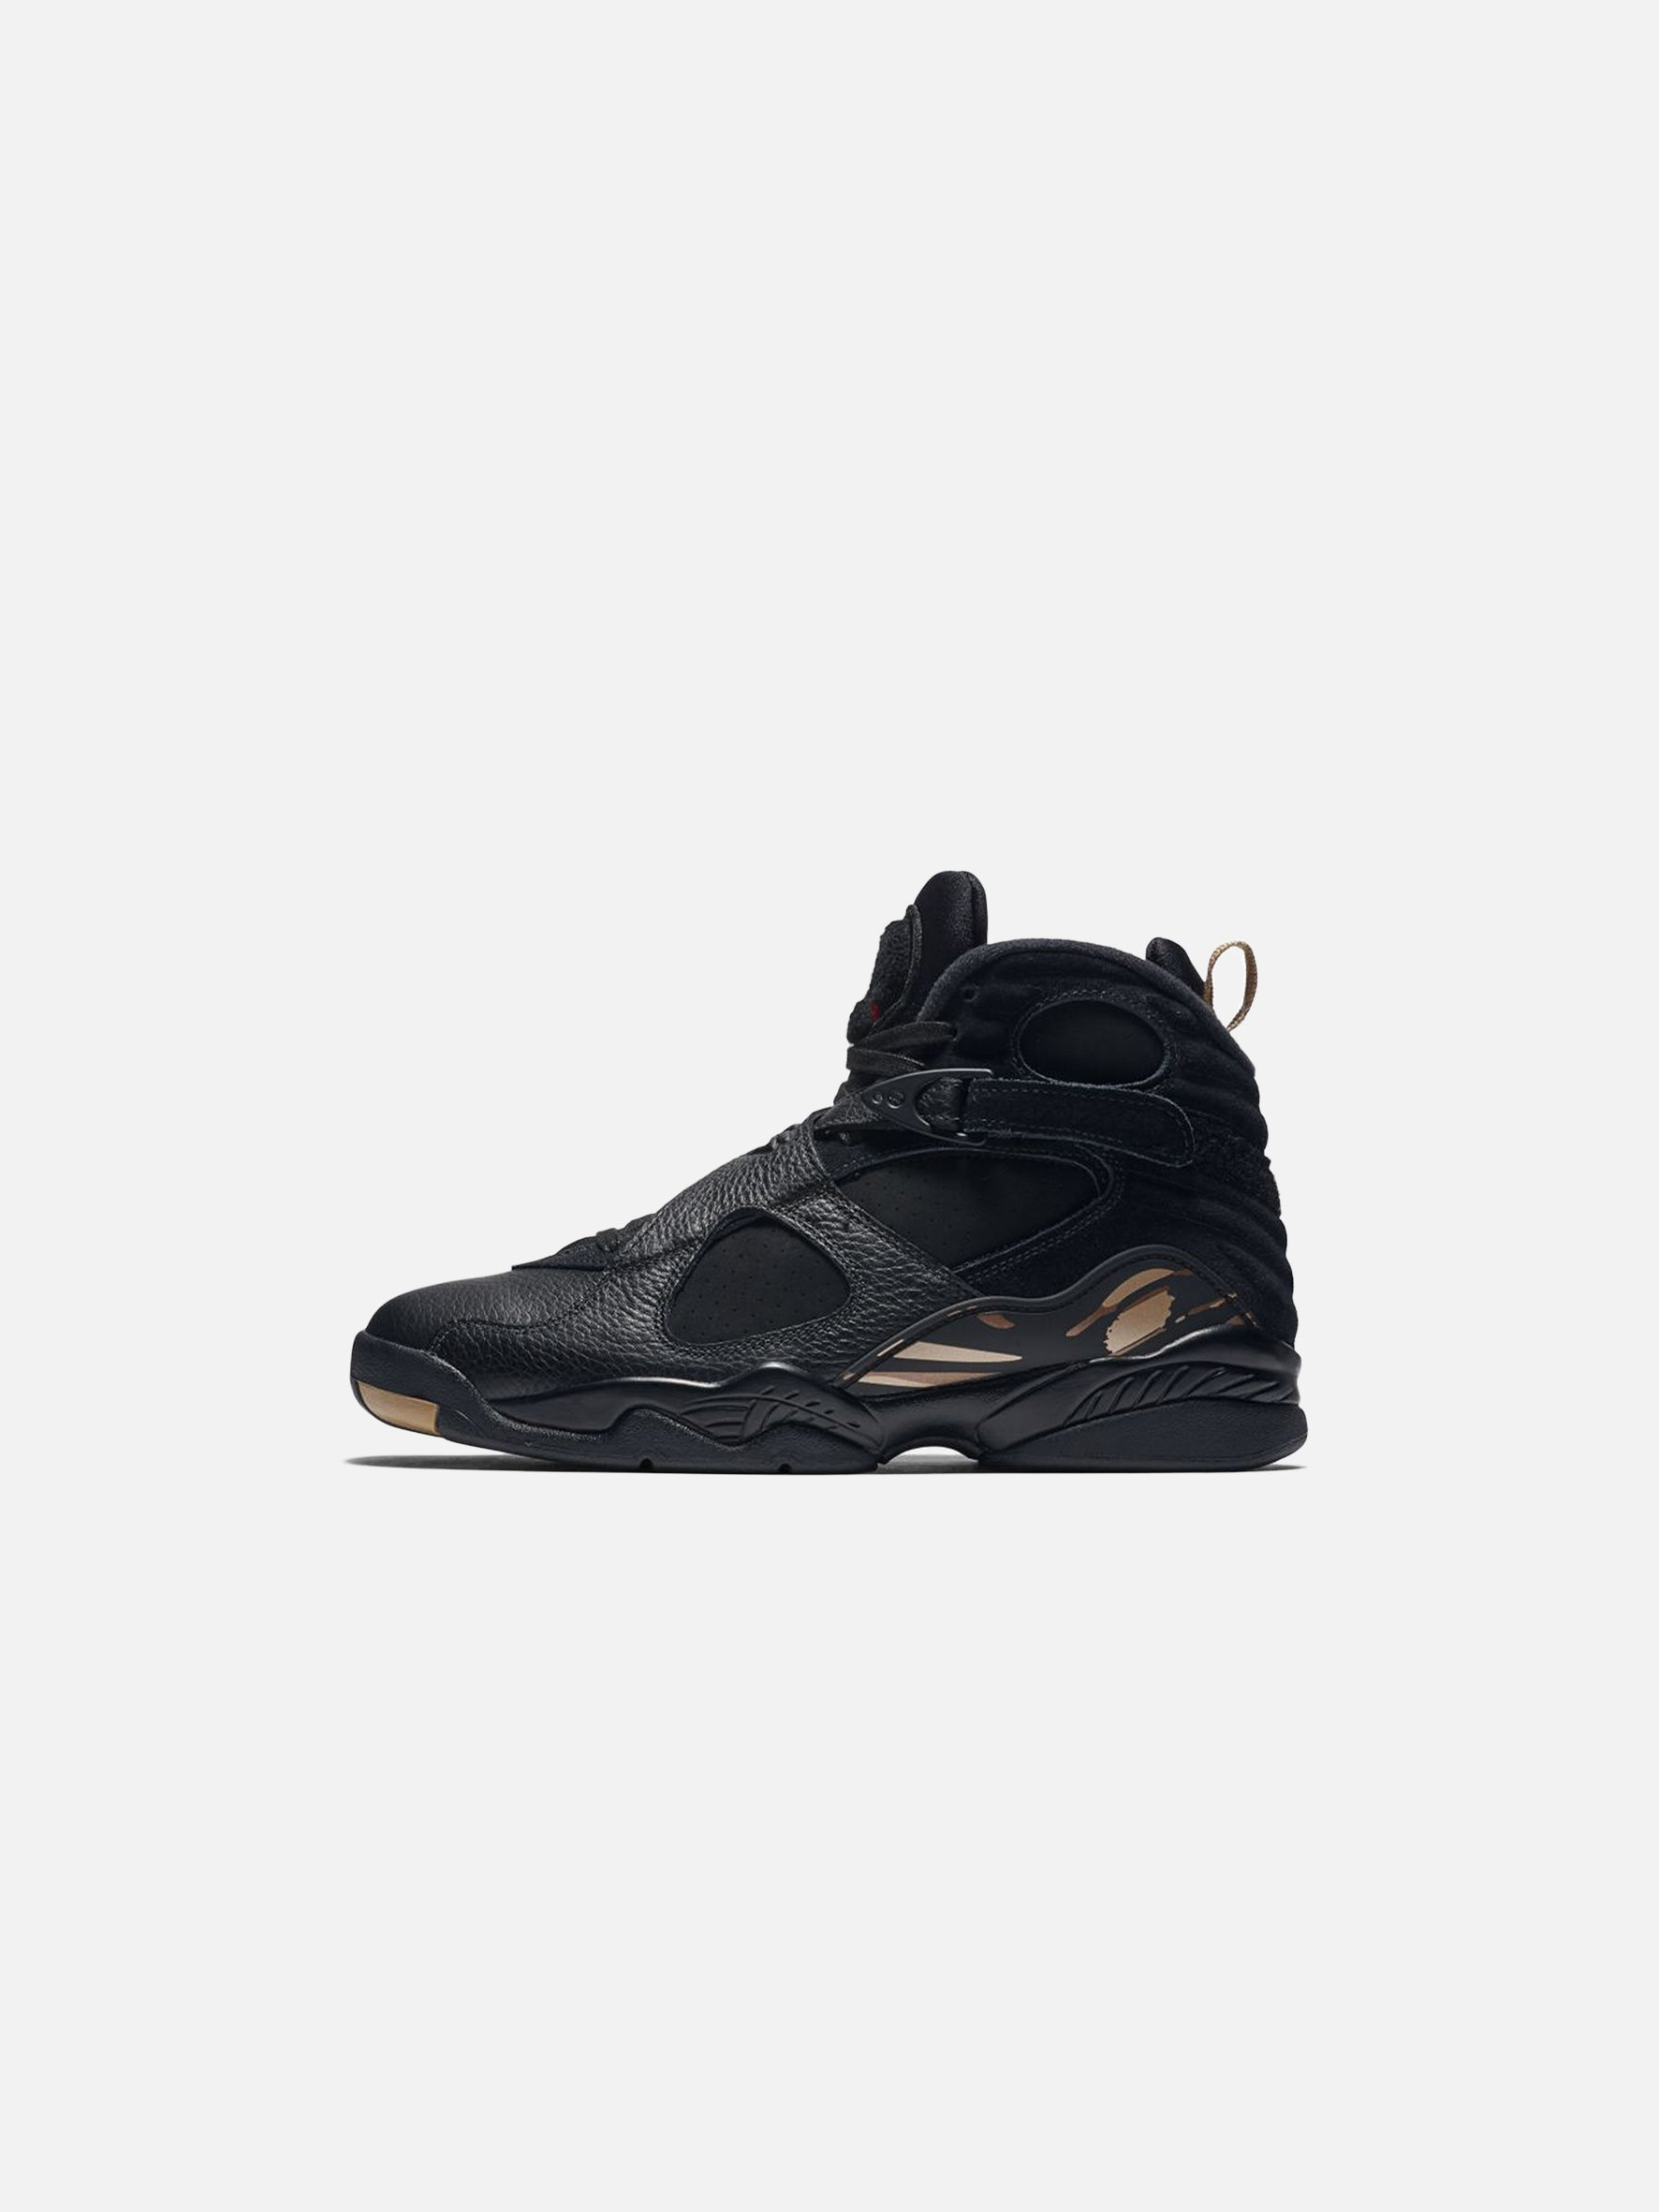 Nike x OVO Air Jordan VIII Black